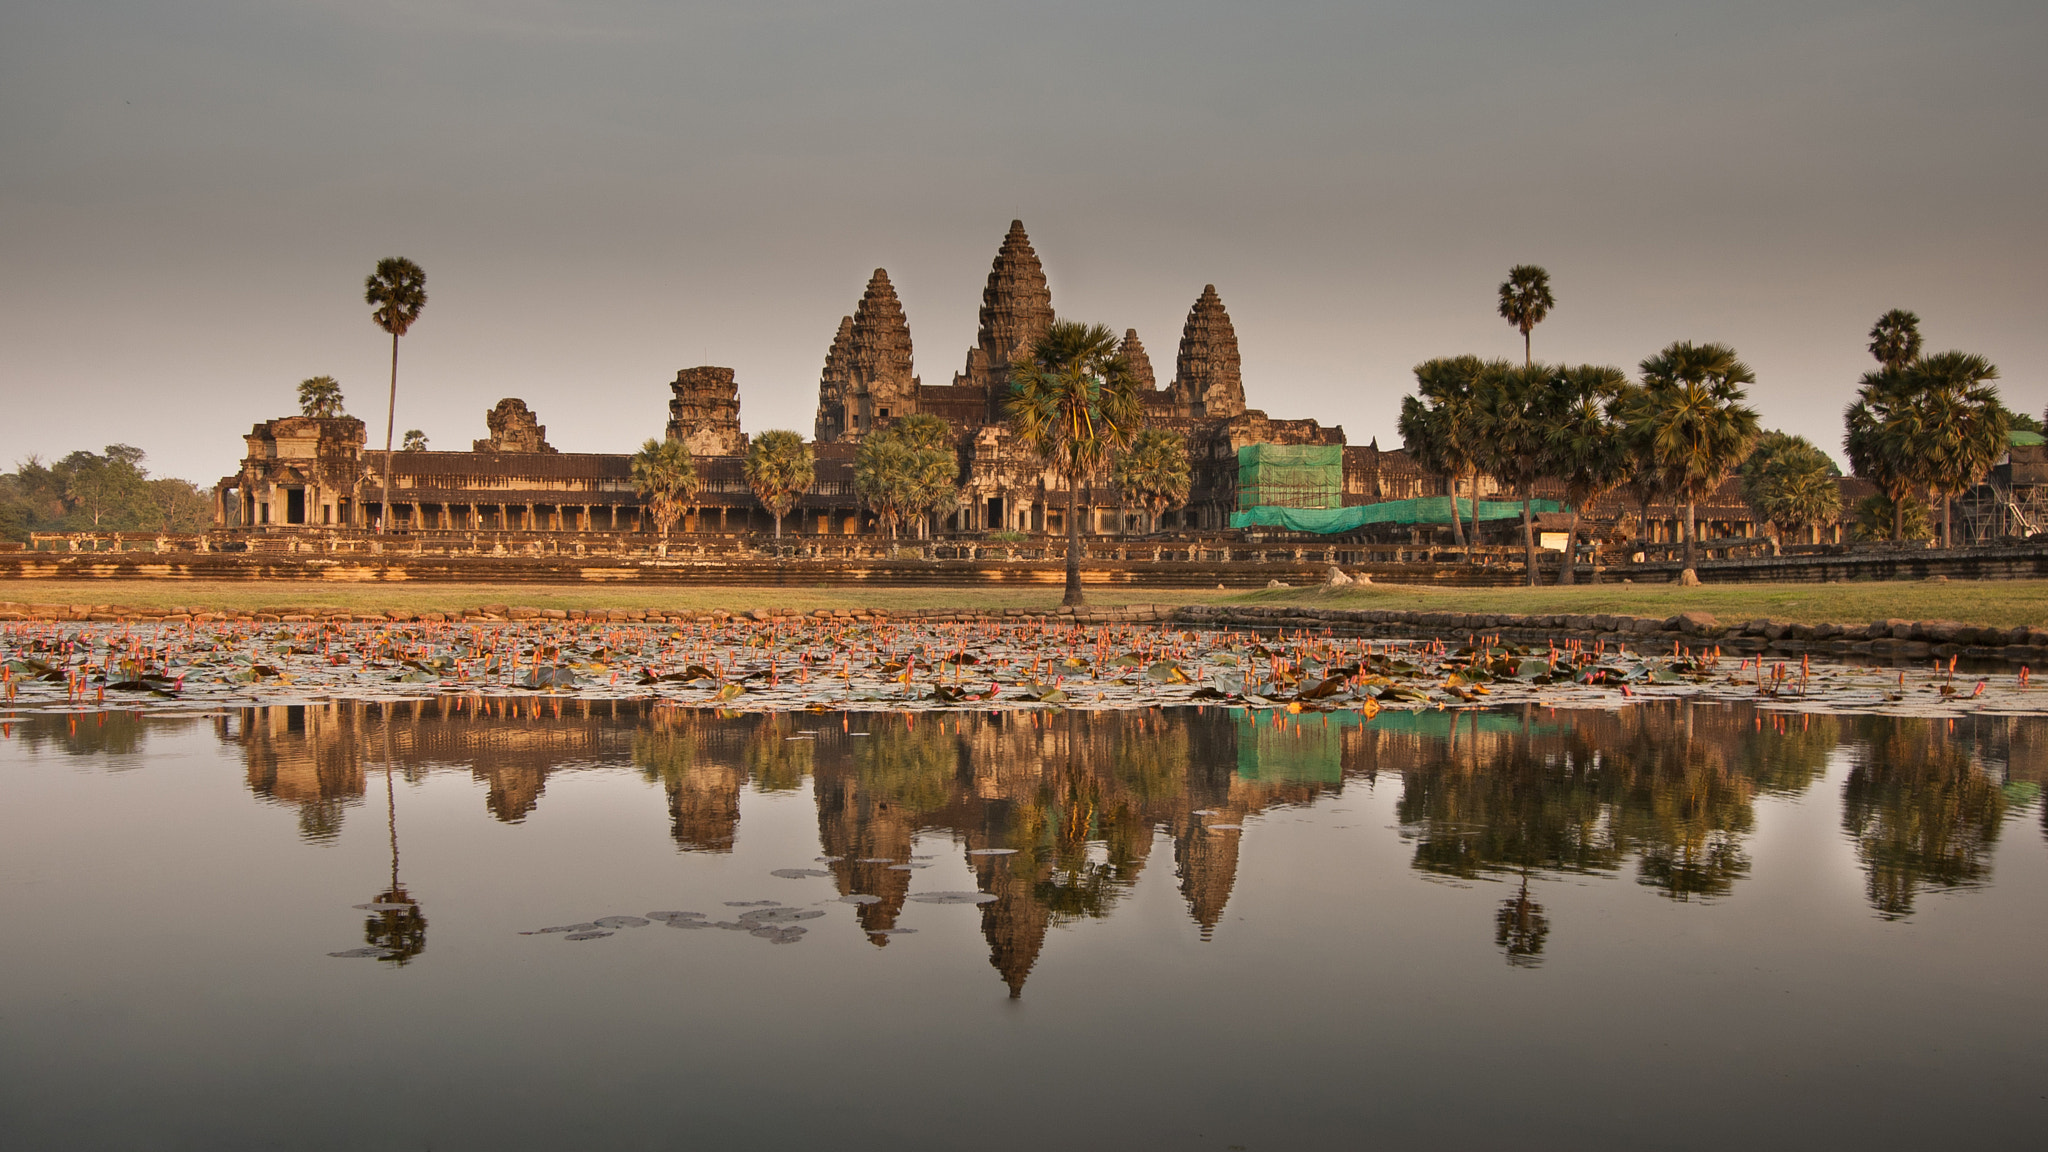 Photograph Angkor Wat by Shannon Ley on 500px